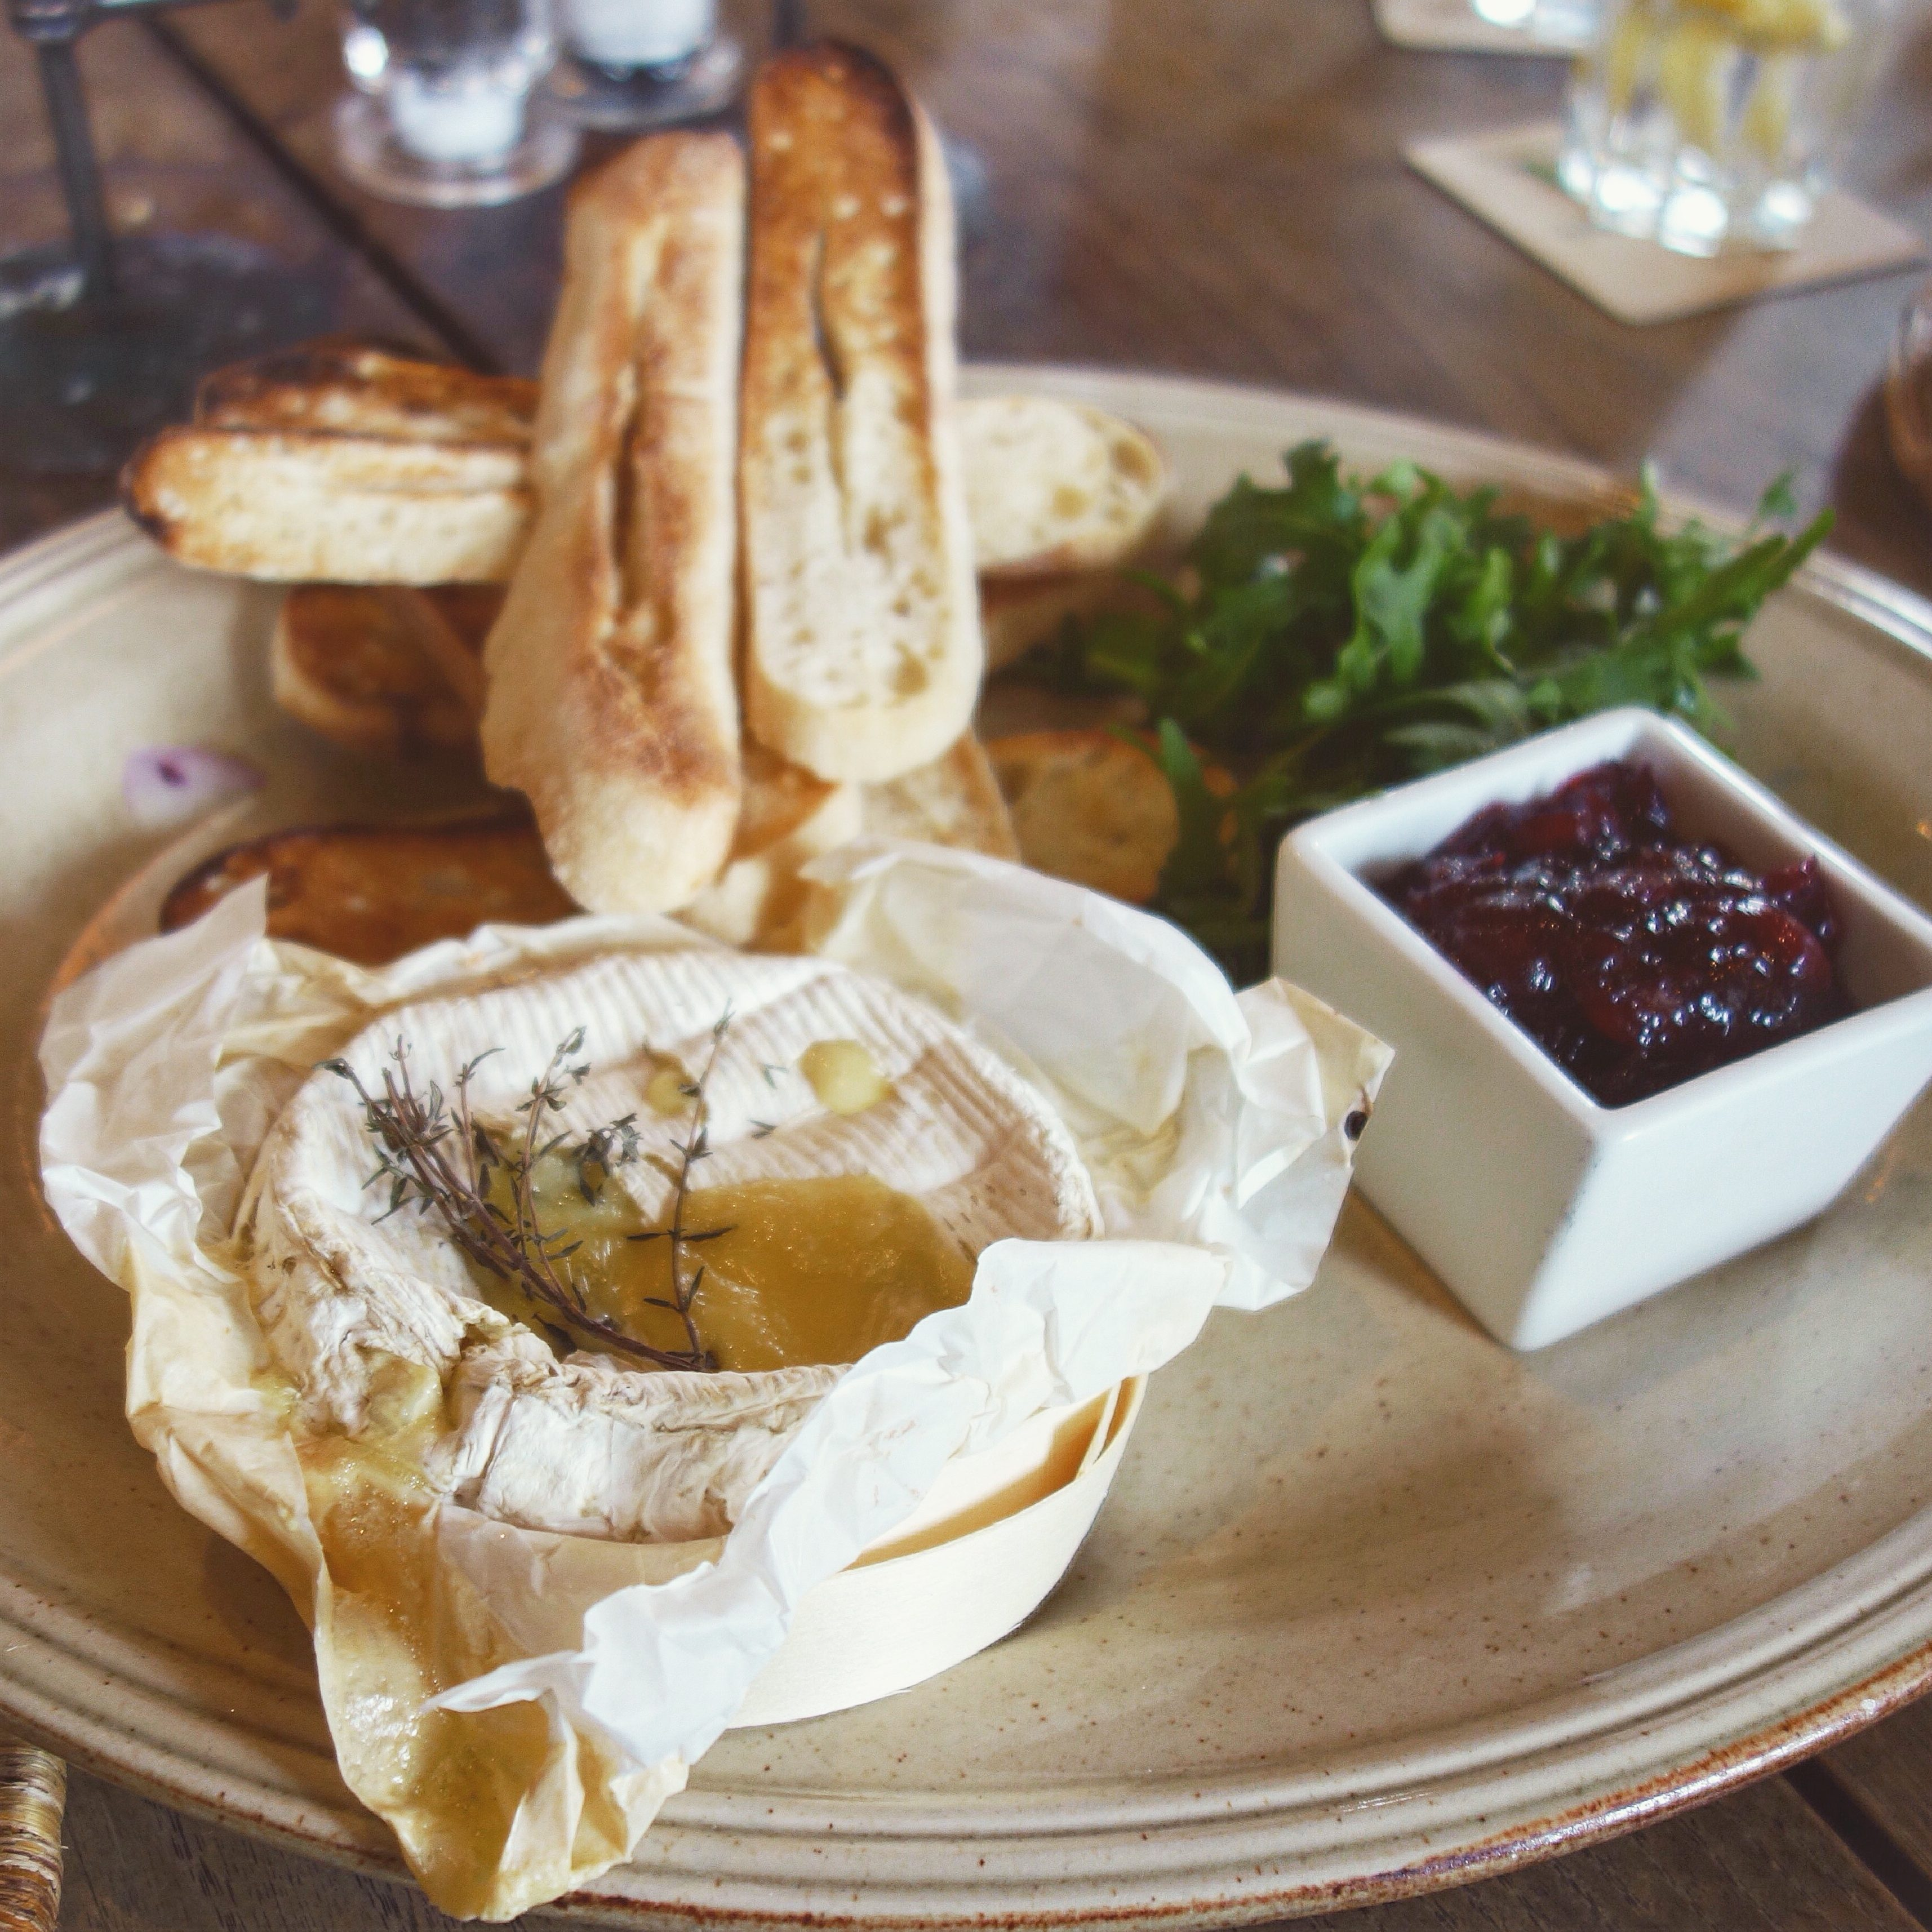 Reasons to love Autumn - camembert